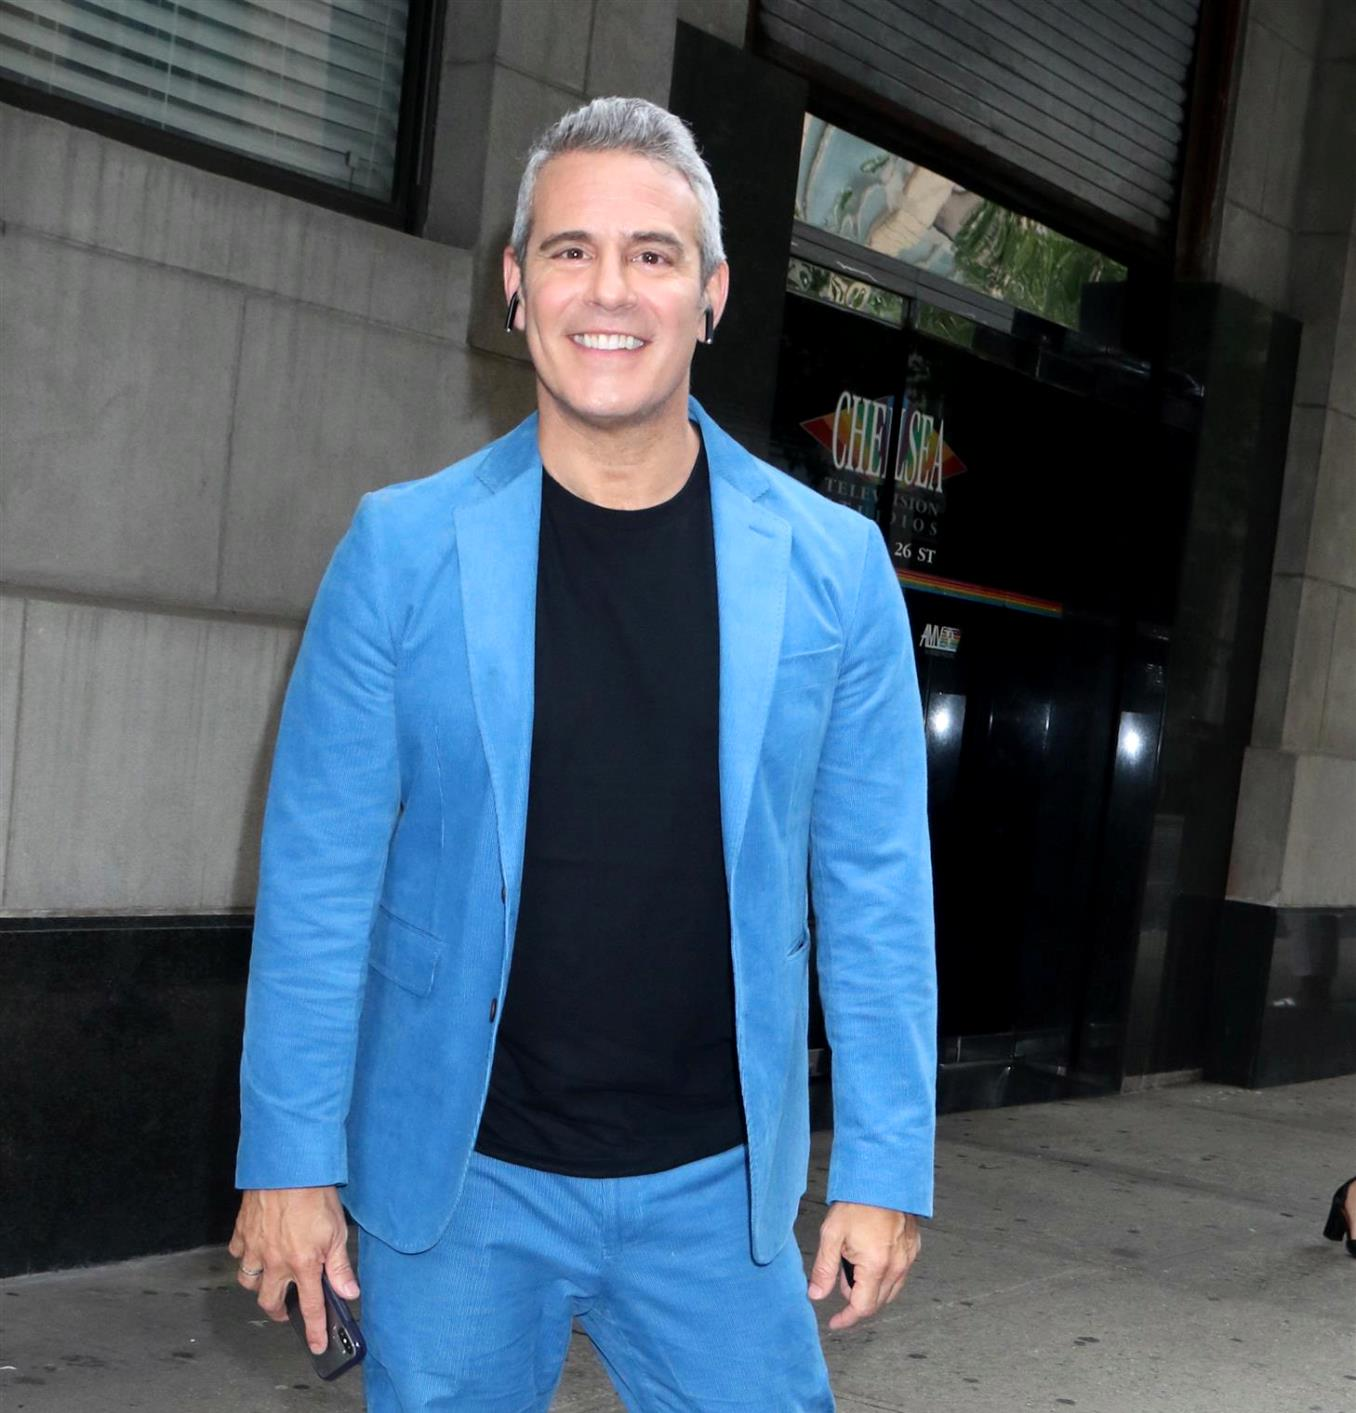 Andy Cohen Reveals Which Three Real Housewives Stars Have the Nicest Houses, Wonders Why Dorit Kemsley and Others are Renting Their Massive Homes